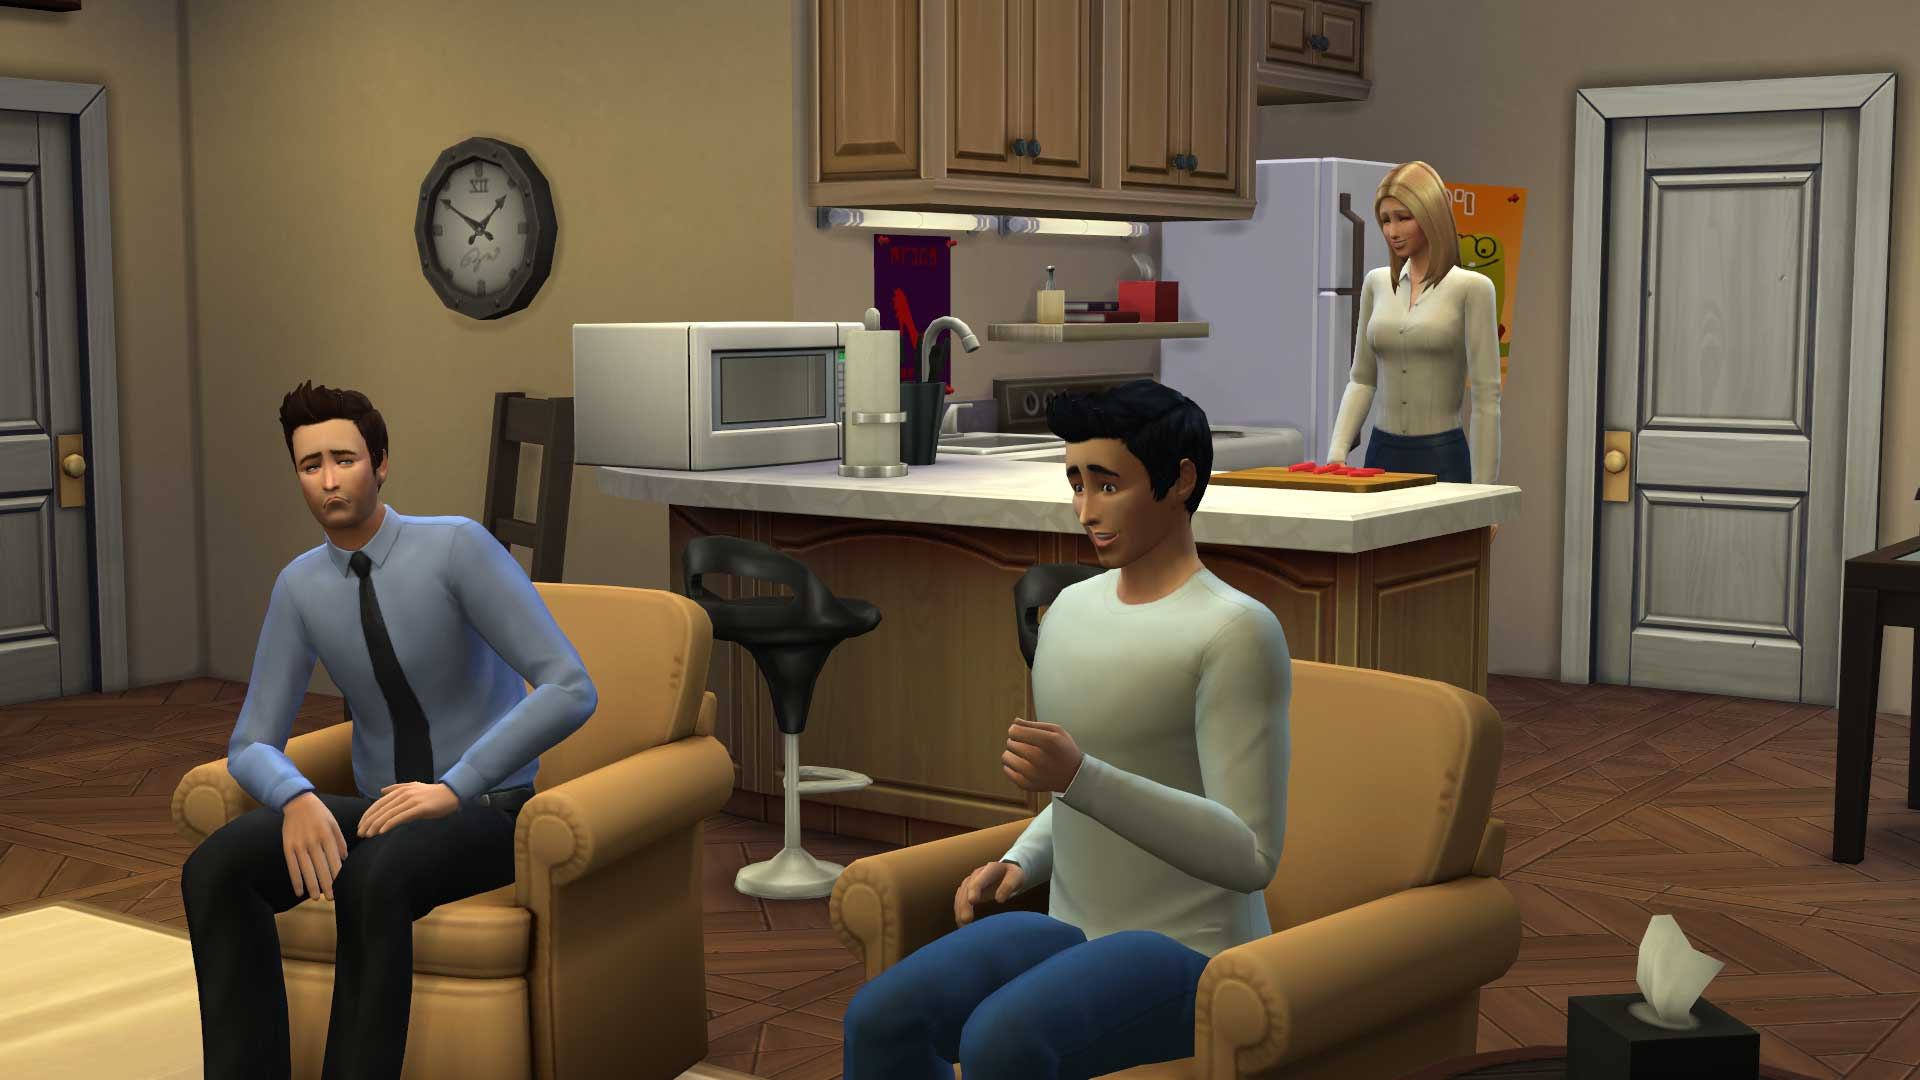 Check Out Friends And Seinfeld Recreated In The Sims 4 Vg247